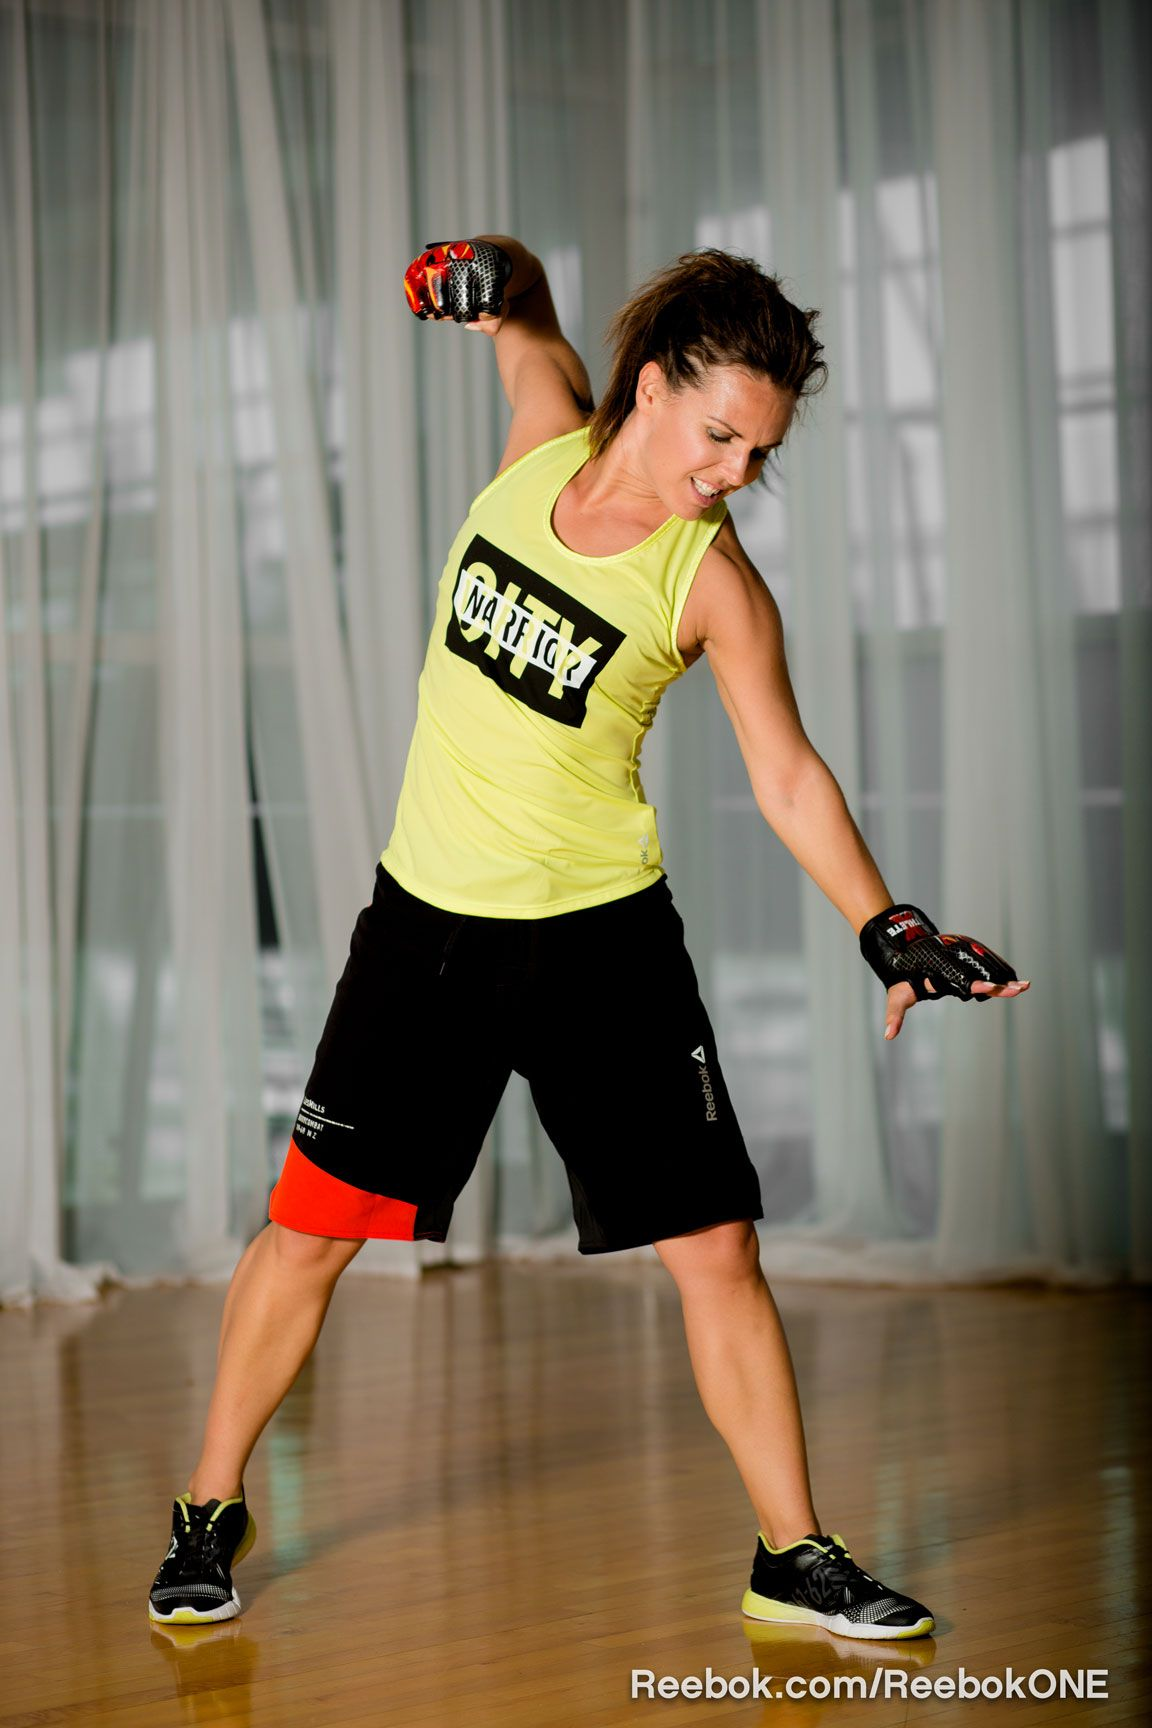 53c95f5ee91dd Awesome BODYCOMBAT™ gear from  Reebok.  staywiththefight  keepitreal   citywarrior